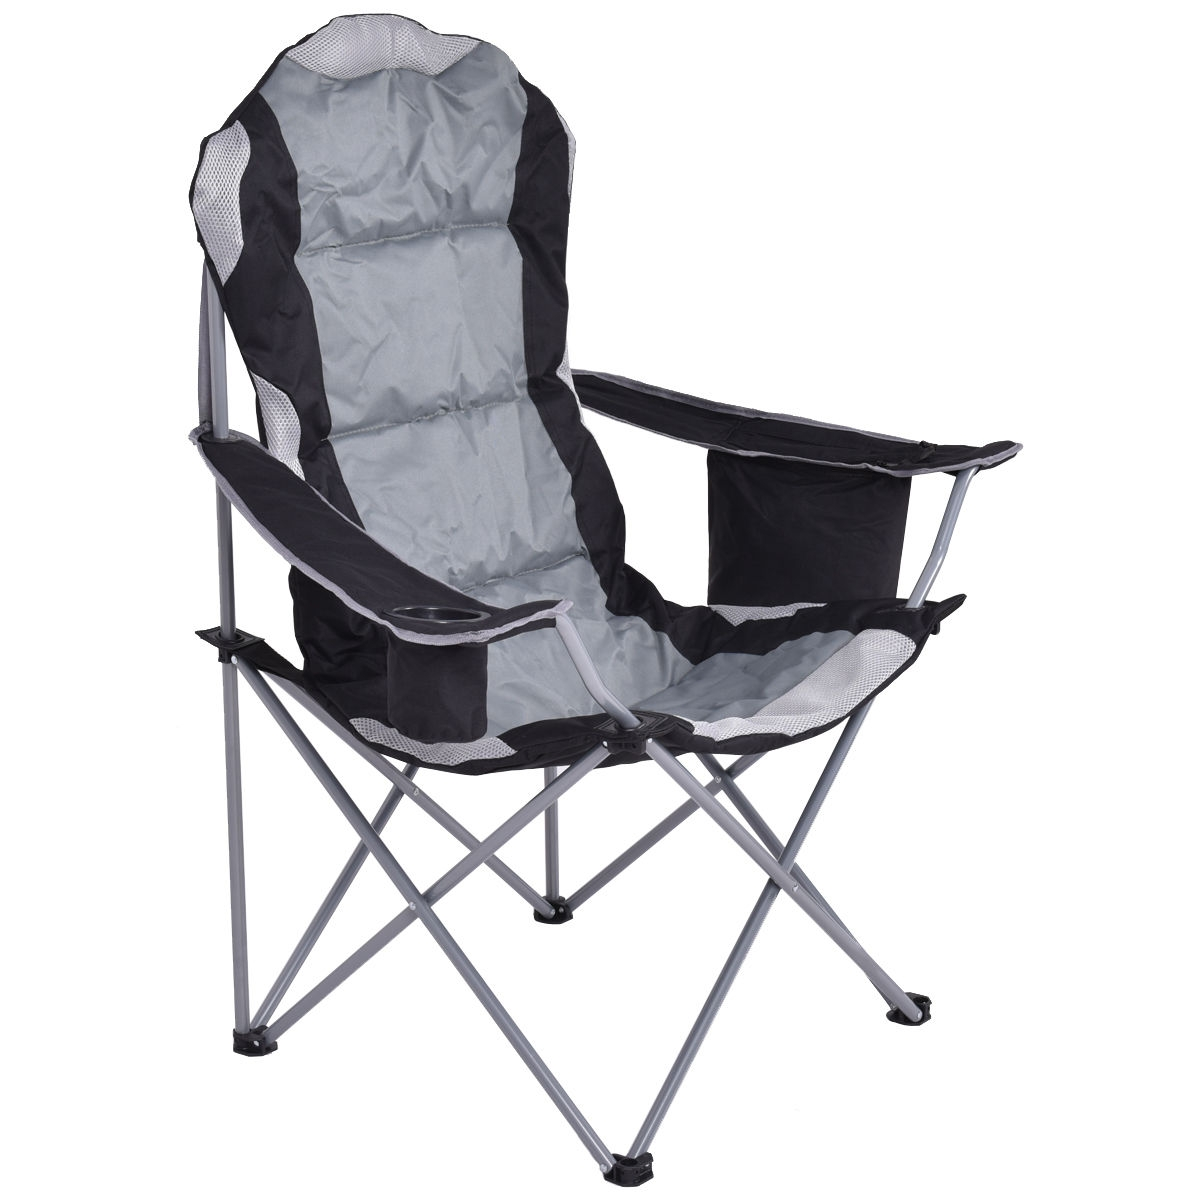 Beach Folding Chairs Outdoor Beach Portable Camping Folding Chair